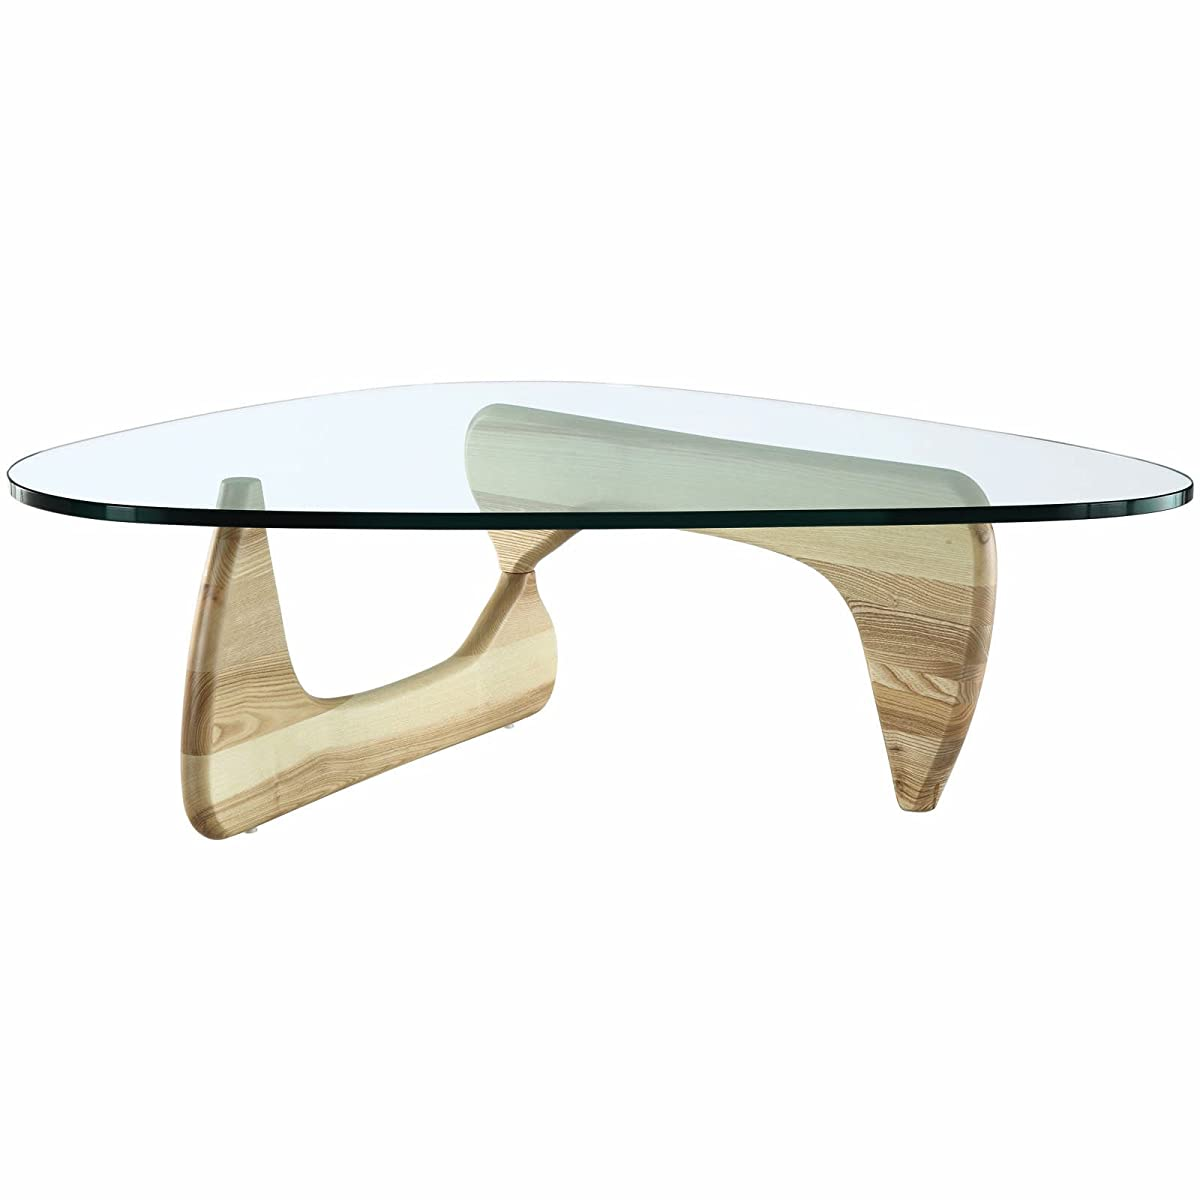 EMODERN FURNITURE eMod - Noguchi Coffee Table Triangle Glass Top Natural Base